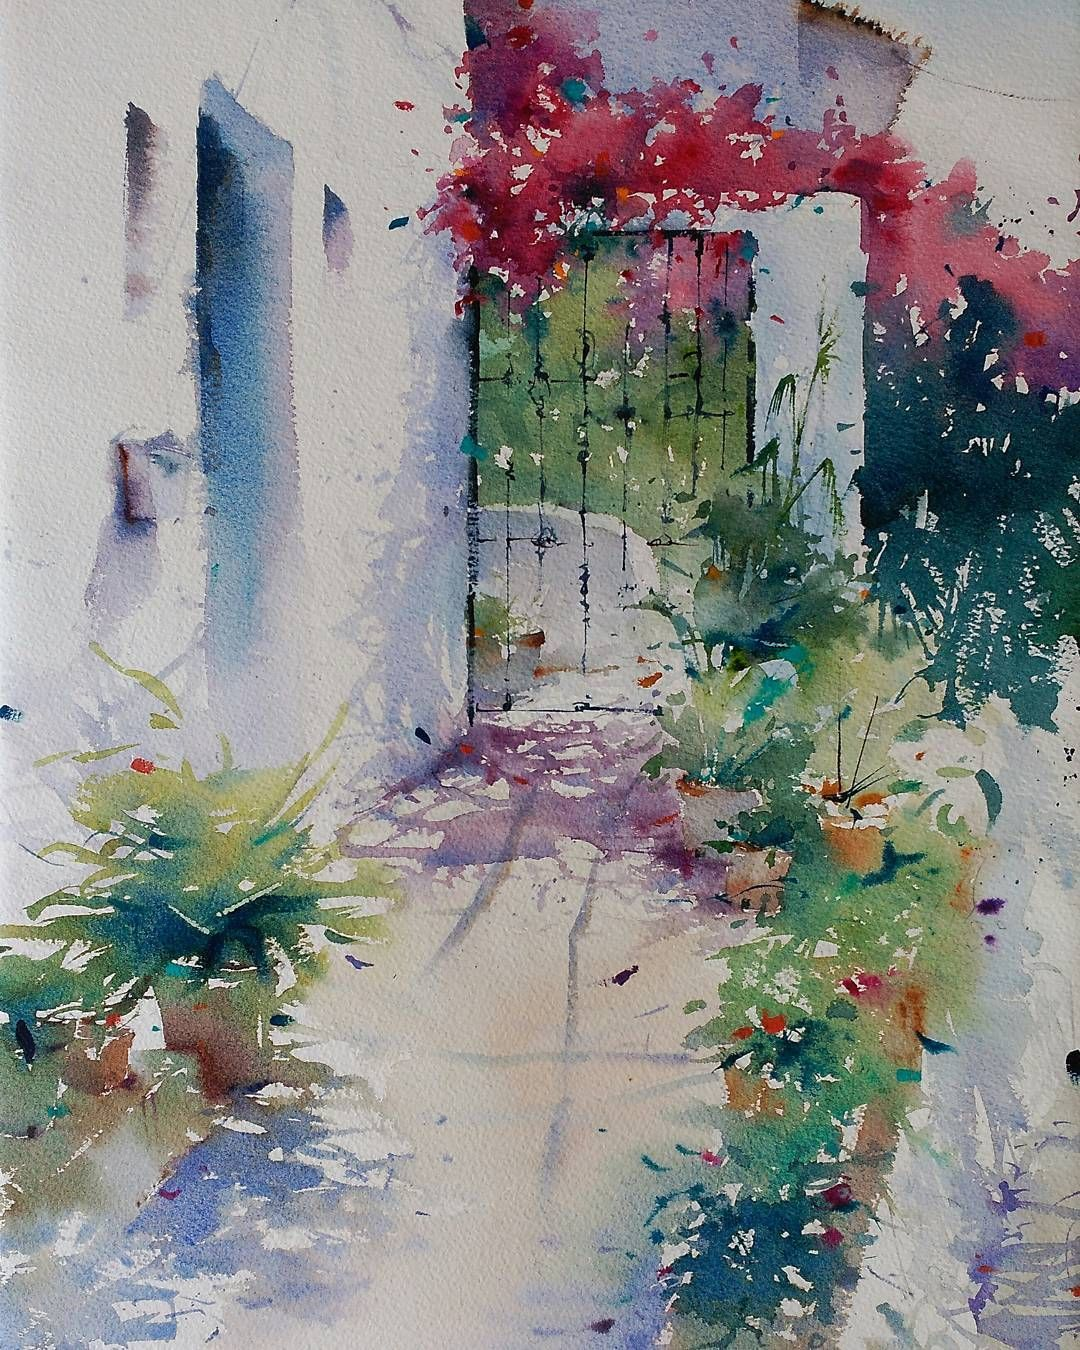 Buganvillas Acuarela S Papel 55x36 Cm Watercolor Aquarelle Art